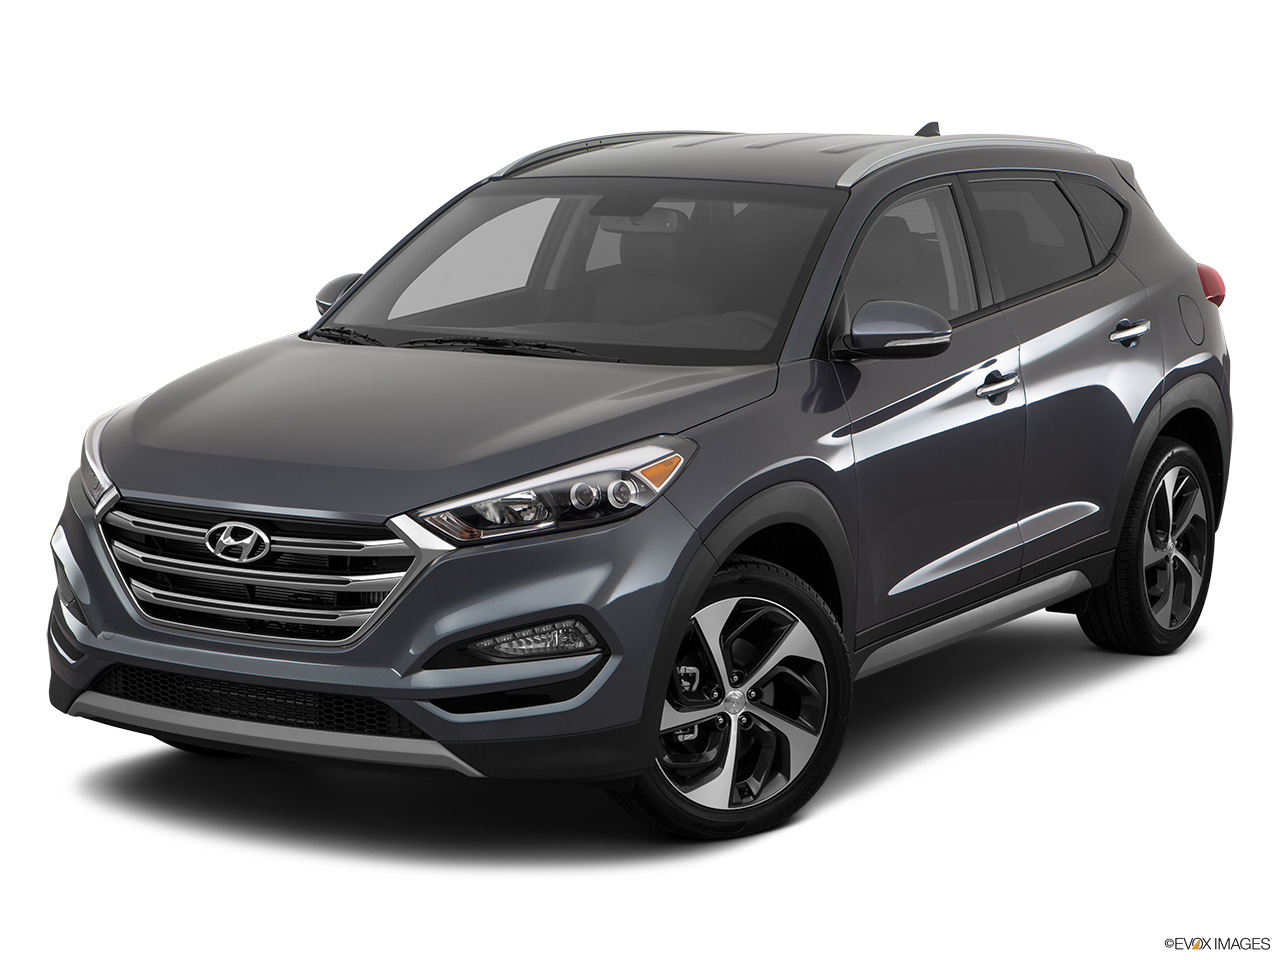 2017 Hyundai Tucson Prices In Uae Gulf Specs Amp Reviews